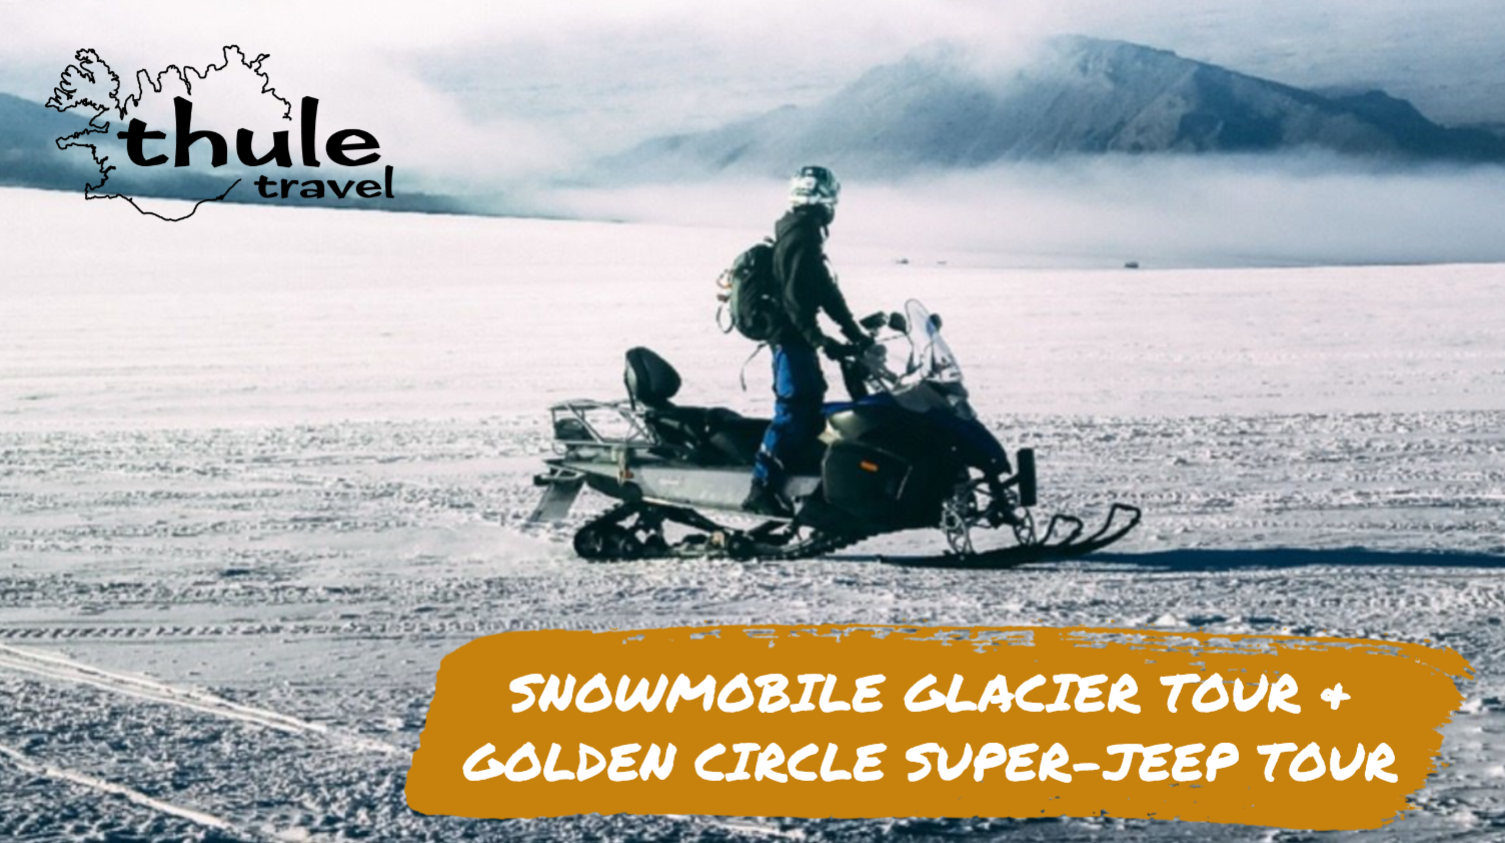 Snowmobile Golden circle